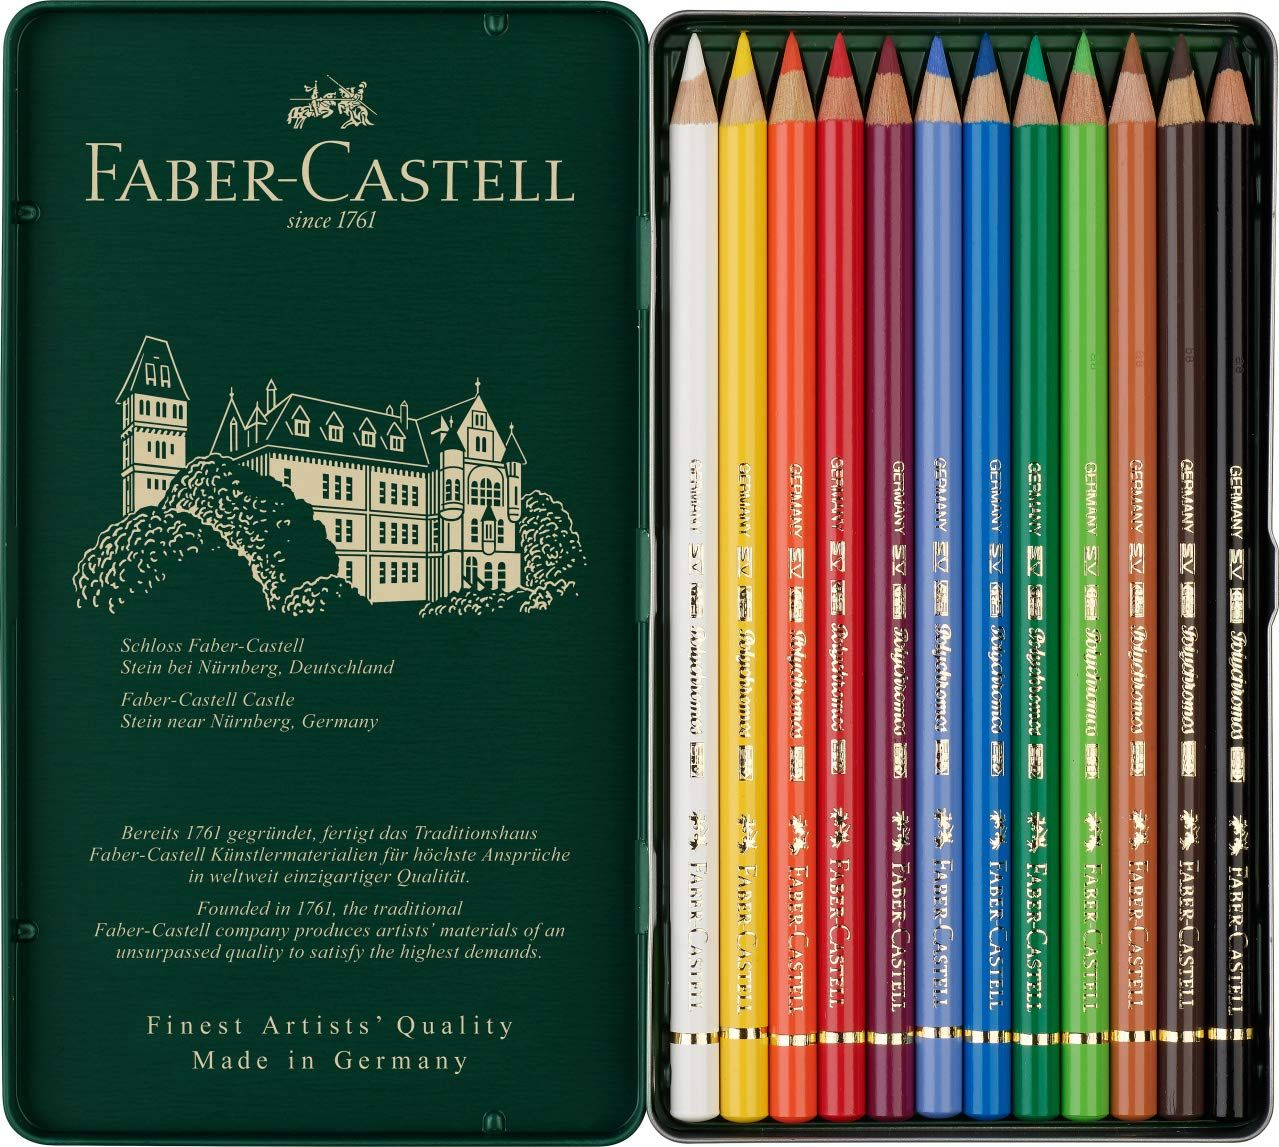 Faber Castell Polychromos Colored Pencils Have Oil Based Leads